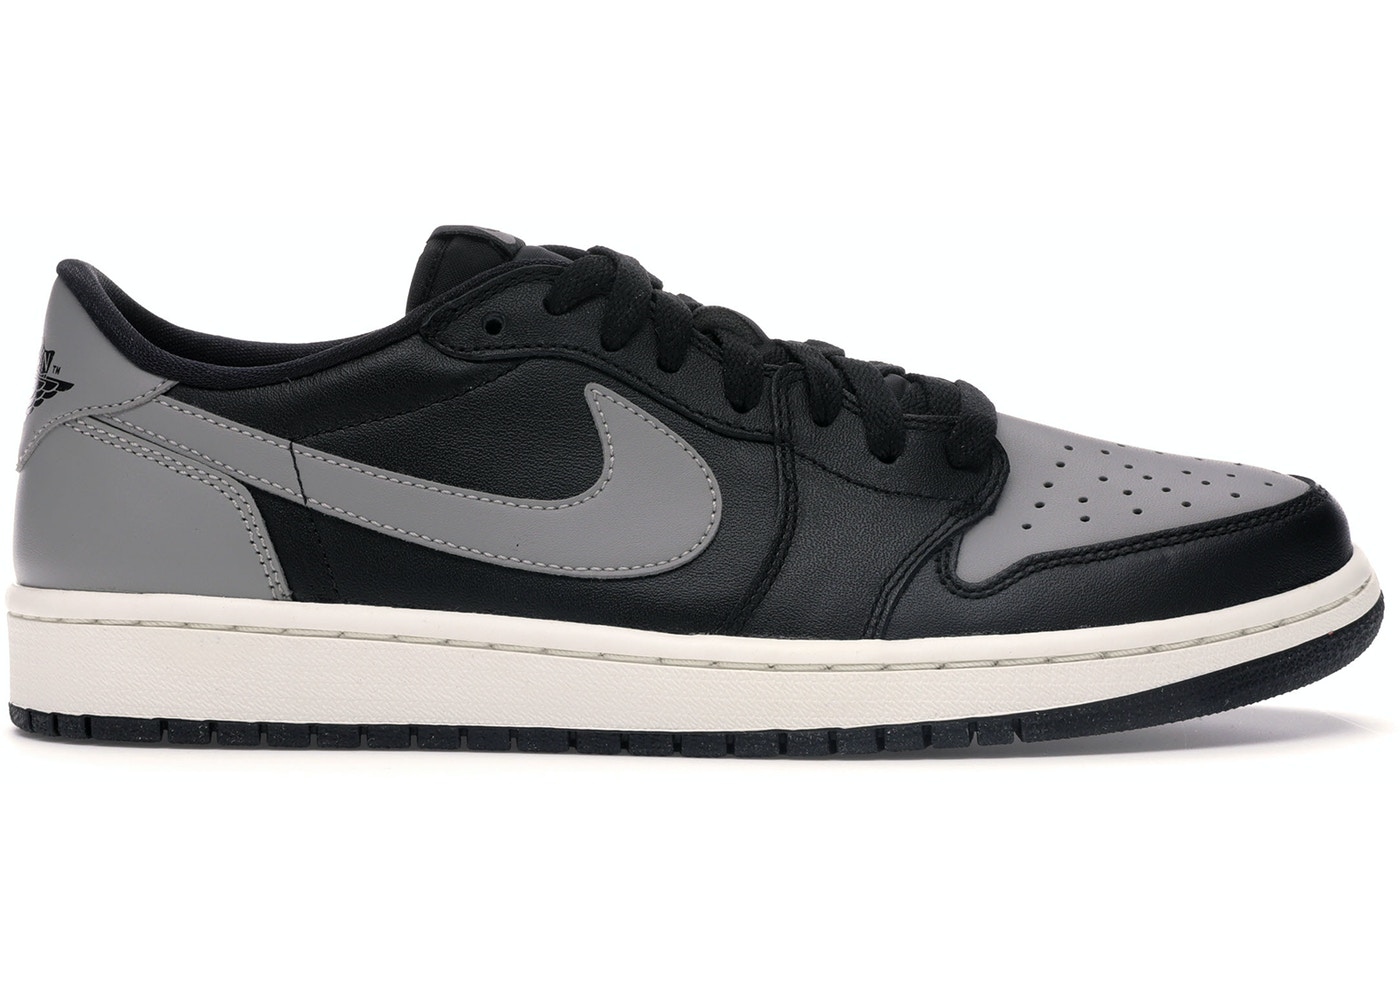 Rettangolo Diligenza Si verificano  Jordan 1 Retro Low Black Grey (2015) - 705329-003